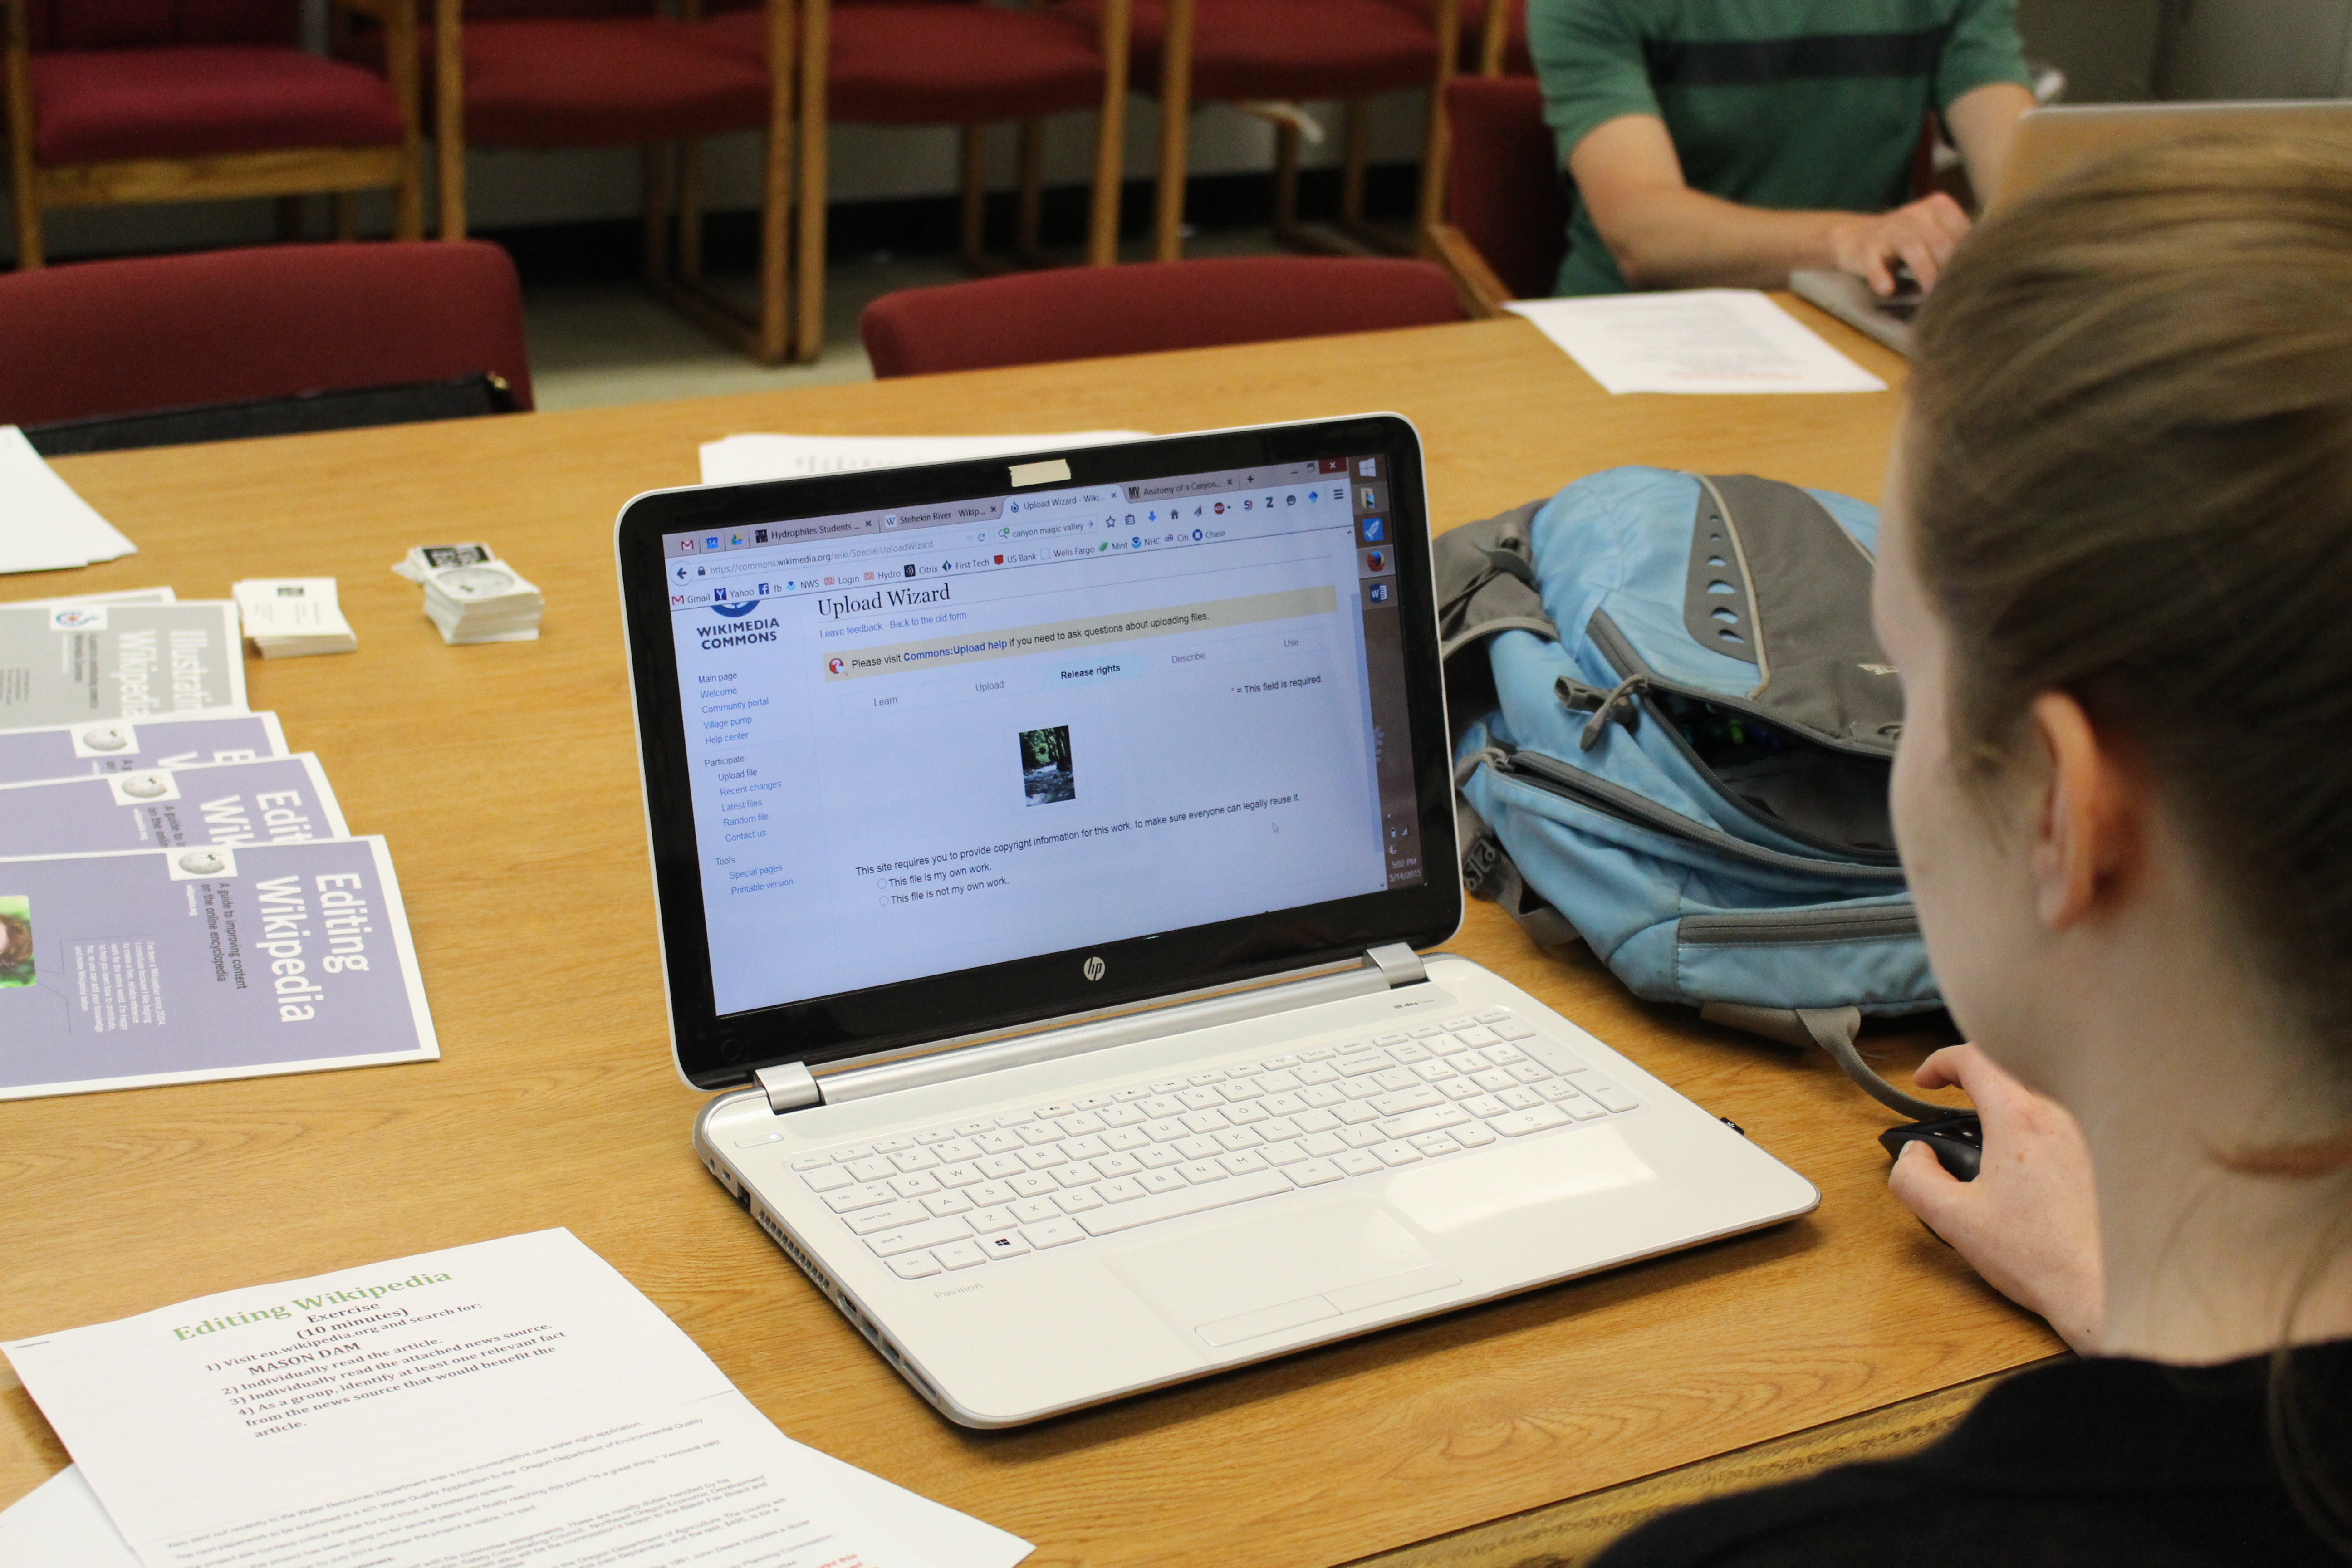 91% of instructors say they'll teach with Wikipedia again